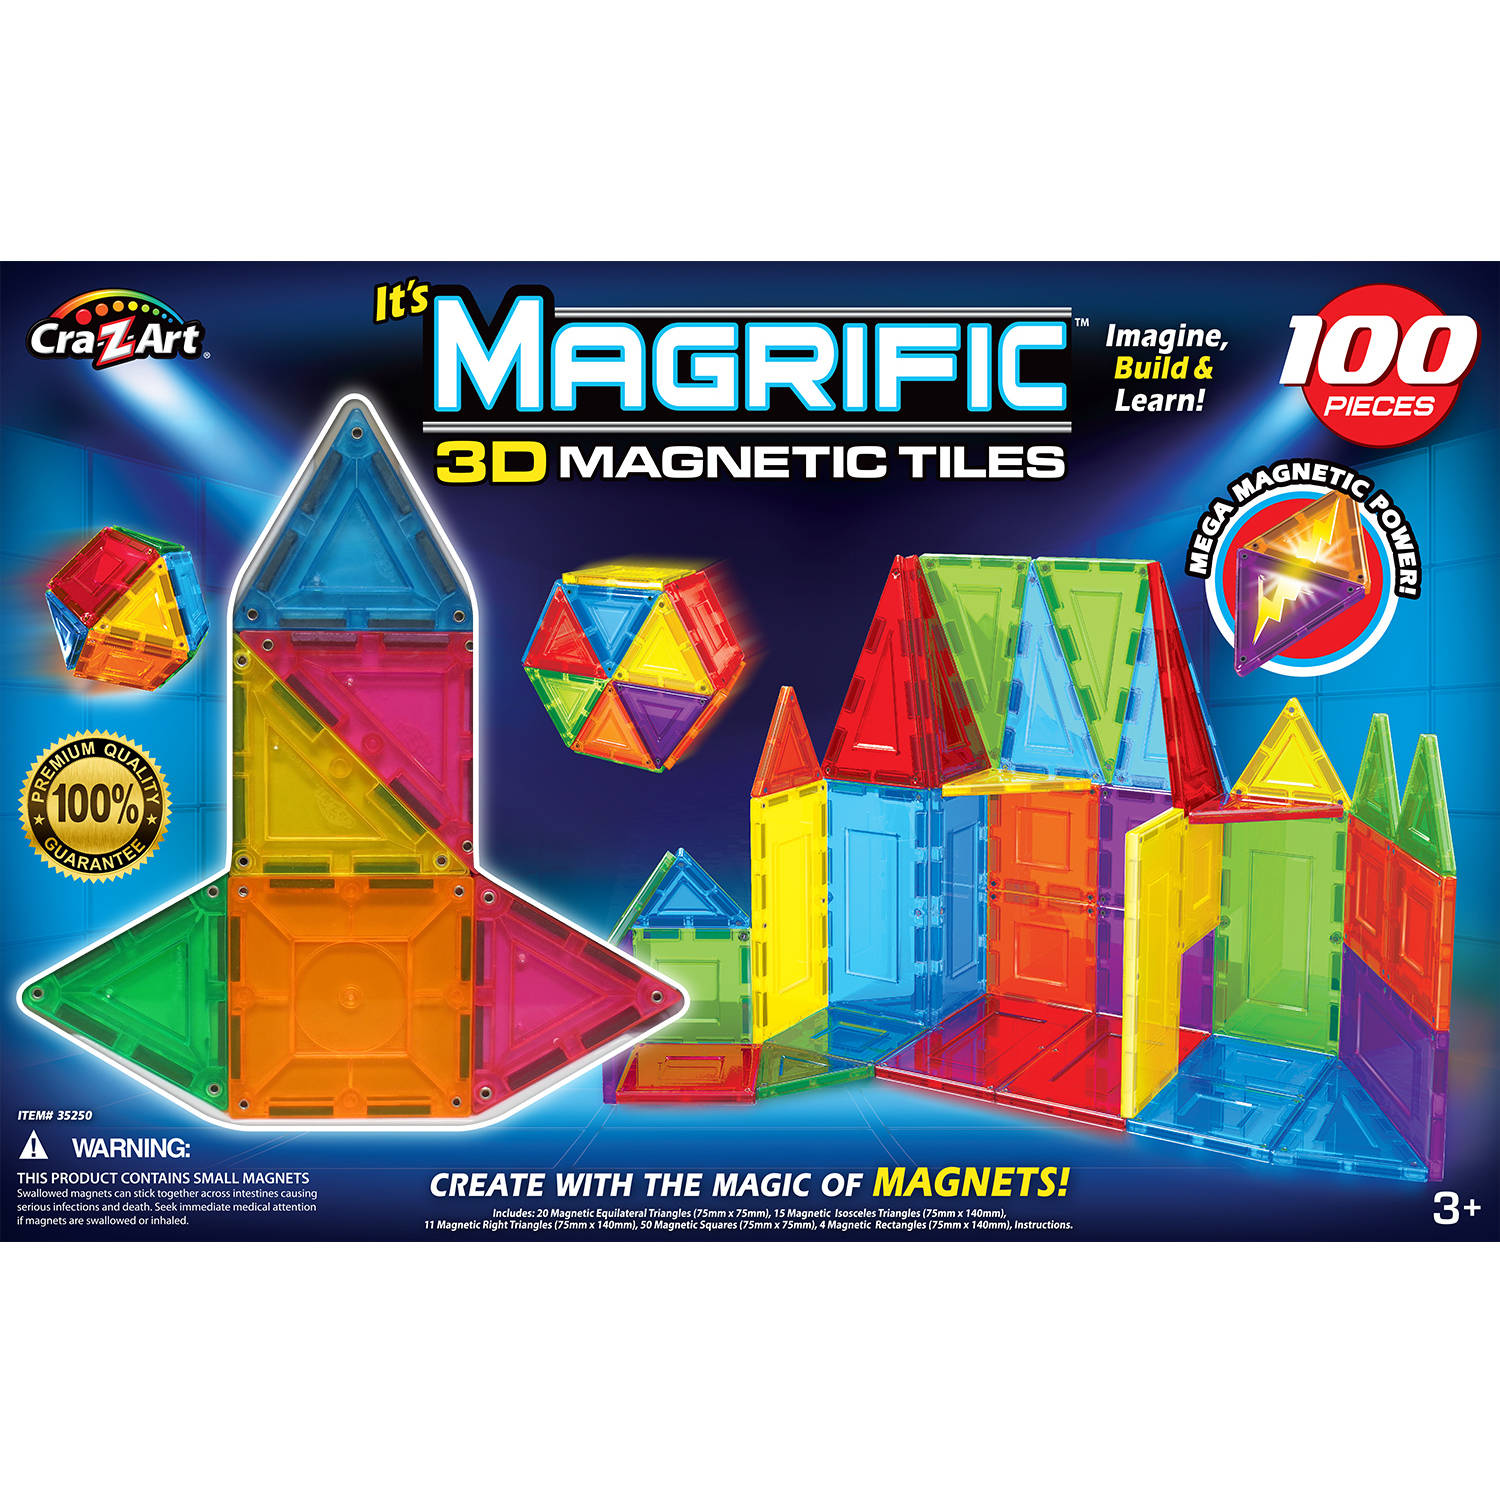 4m 4563am magnetic mi compare best prices online shopping on cra z art magrific 100 piece magnetic set